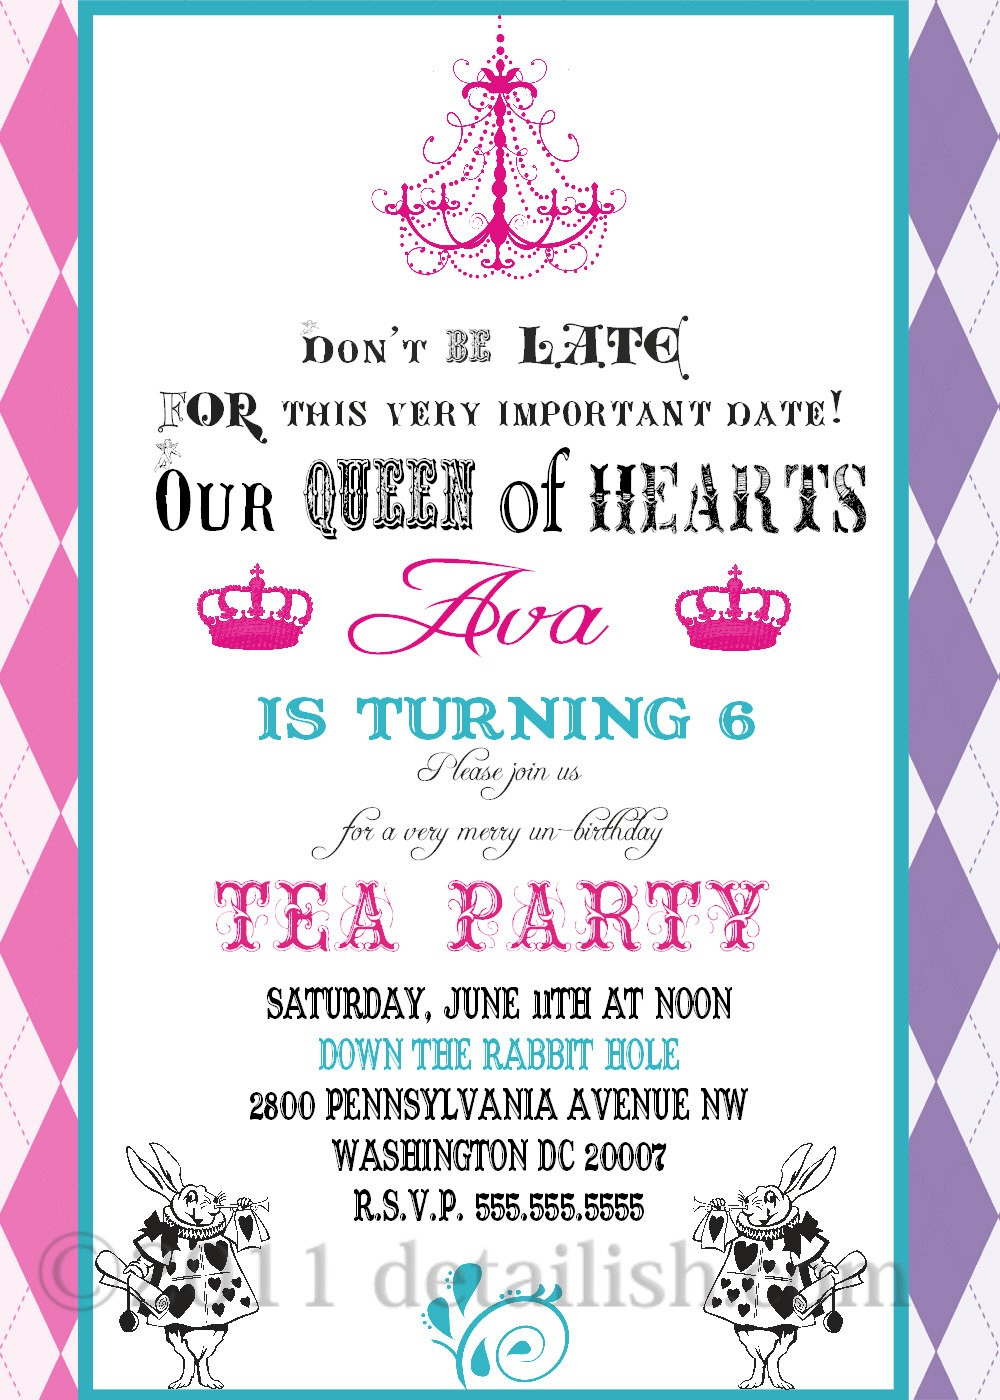 Invitation To Party Sample Mickey Mouse Invitations Templates – Invitation to Party Sample